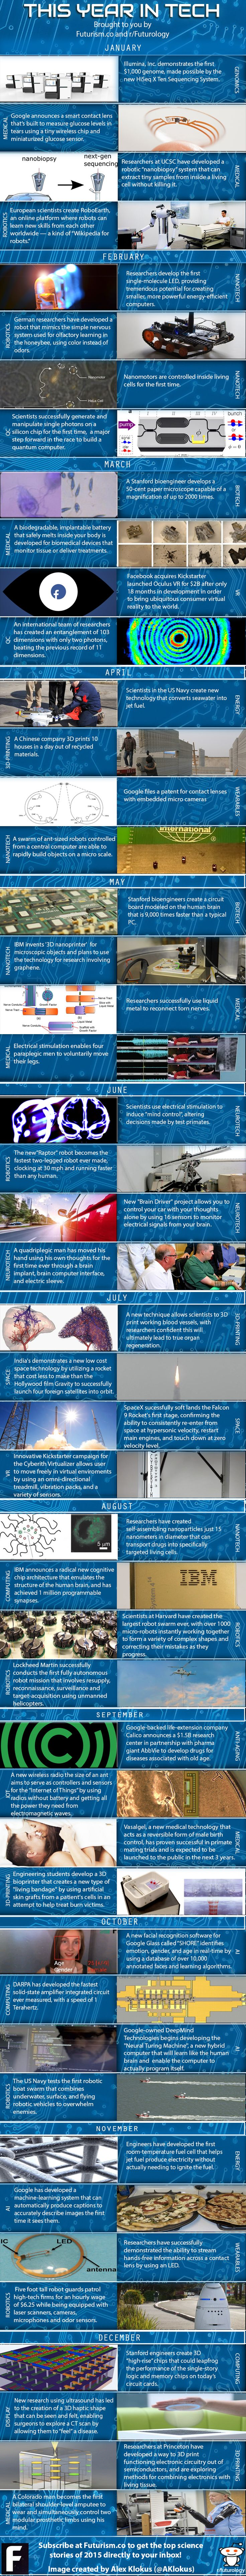 This Year in Technology 2014 Mega-Infographic - Futurism [Future Technology: http://futuristicnews.com/category/future-technology/] #science #technology